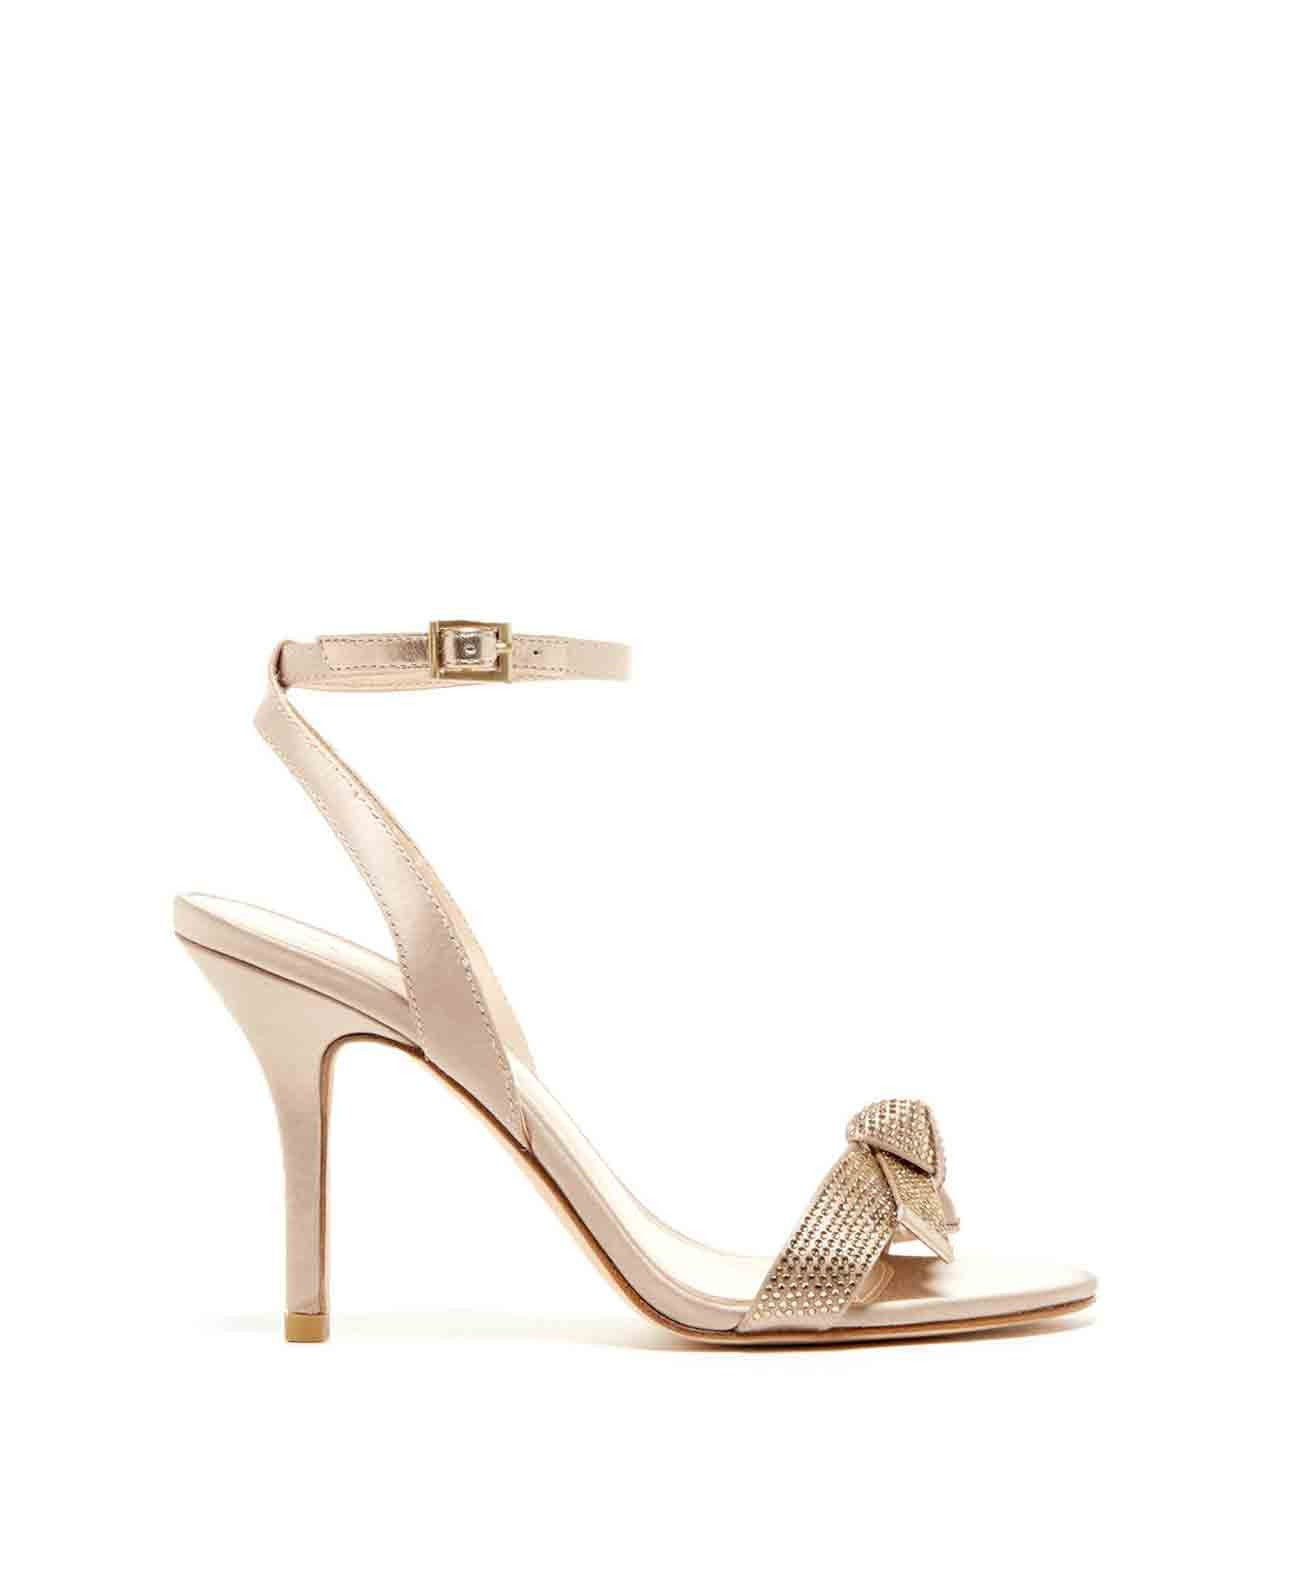 Kim High Heel Sandal